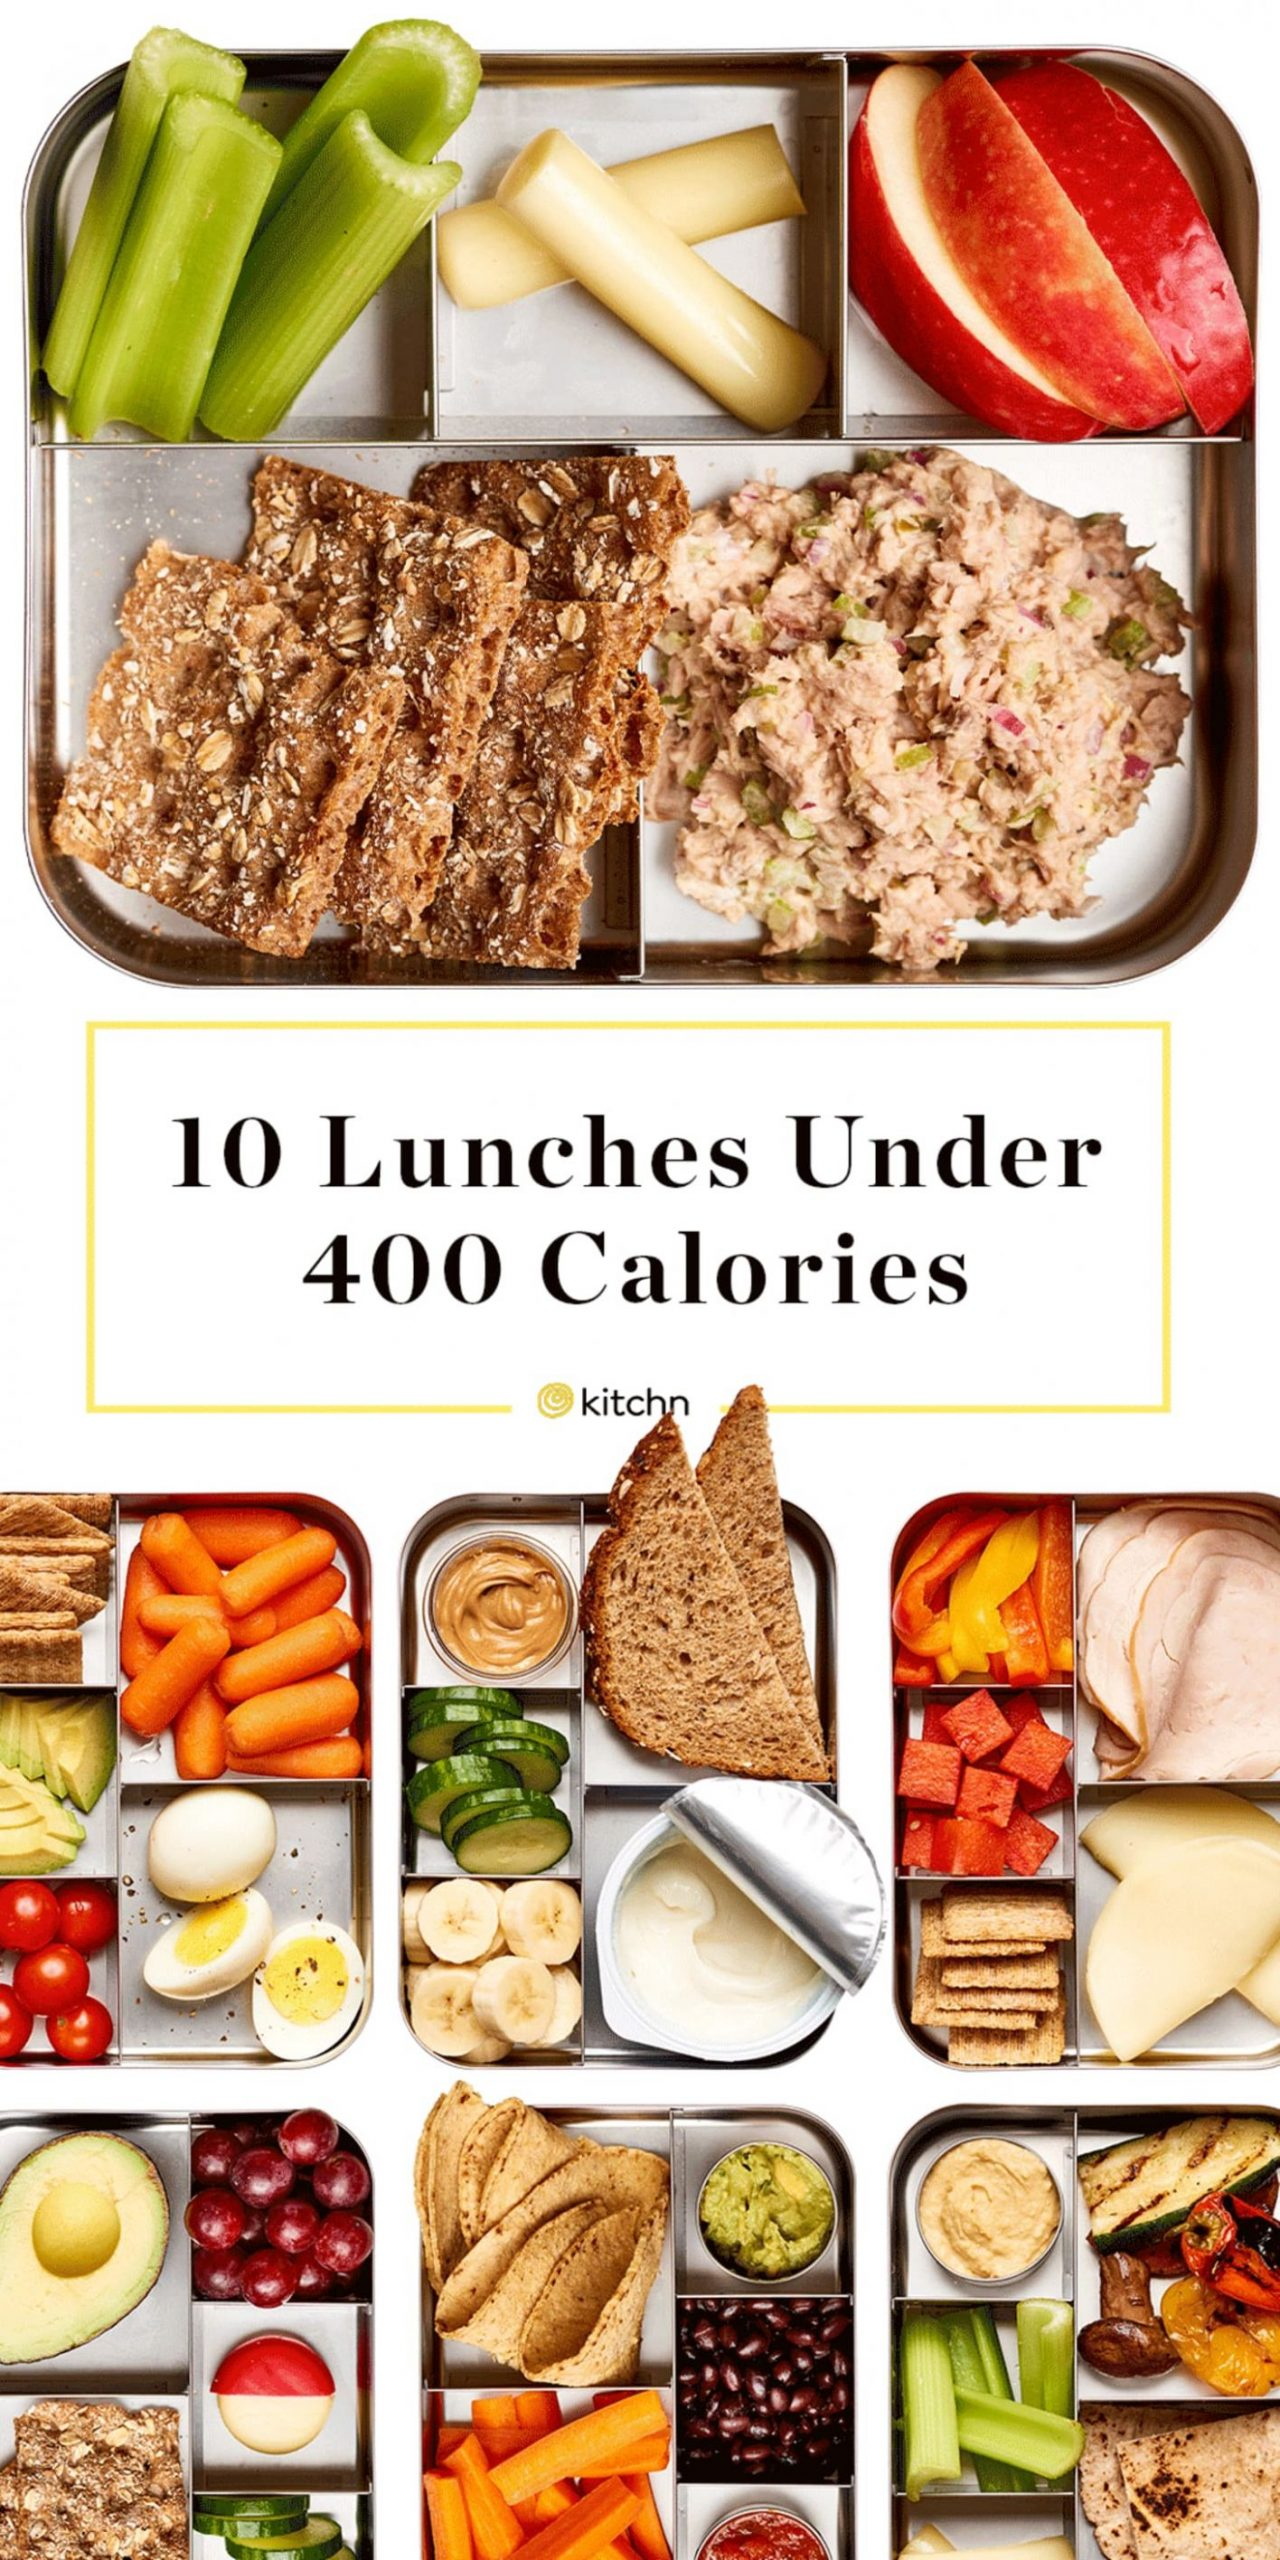 12 Easy Lunch Ideas Under 12 Calories | Kitchn